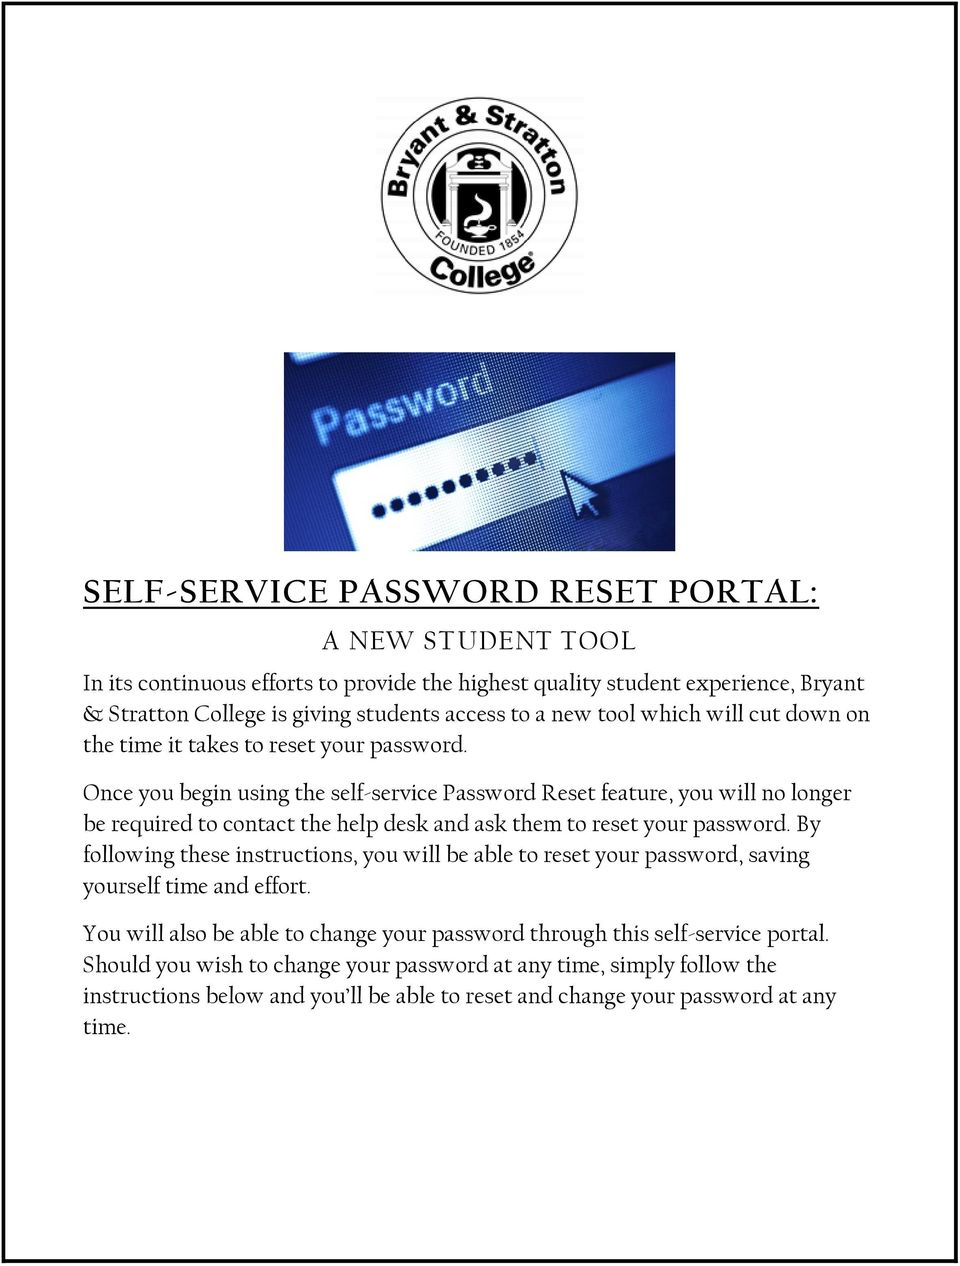 Once you begin using the self-service Password Reset feature, you will no longer be required to contact the help desk and ask them to reset your password.